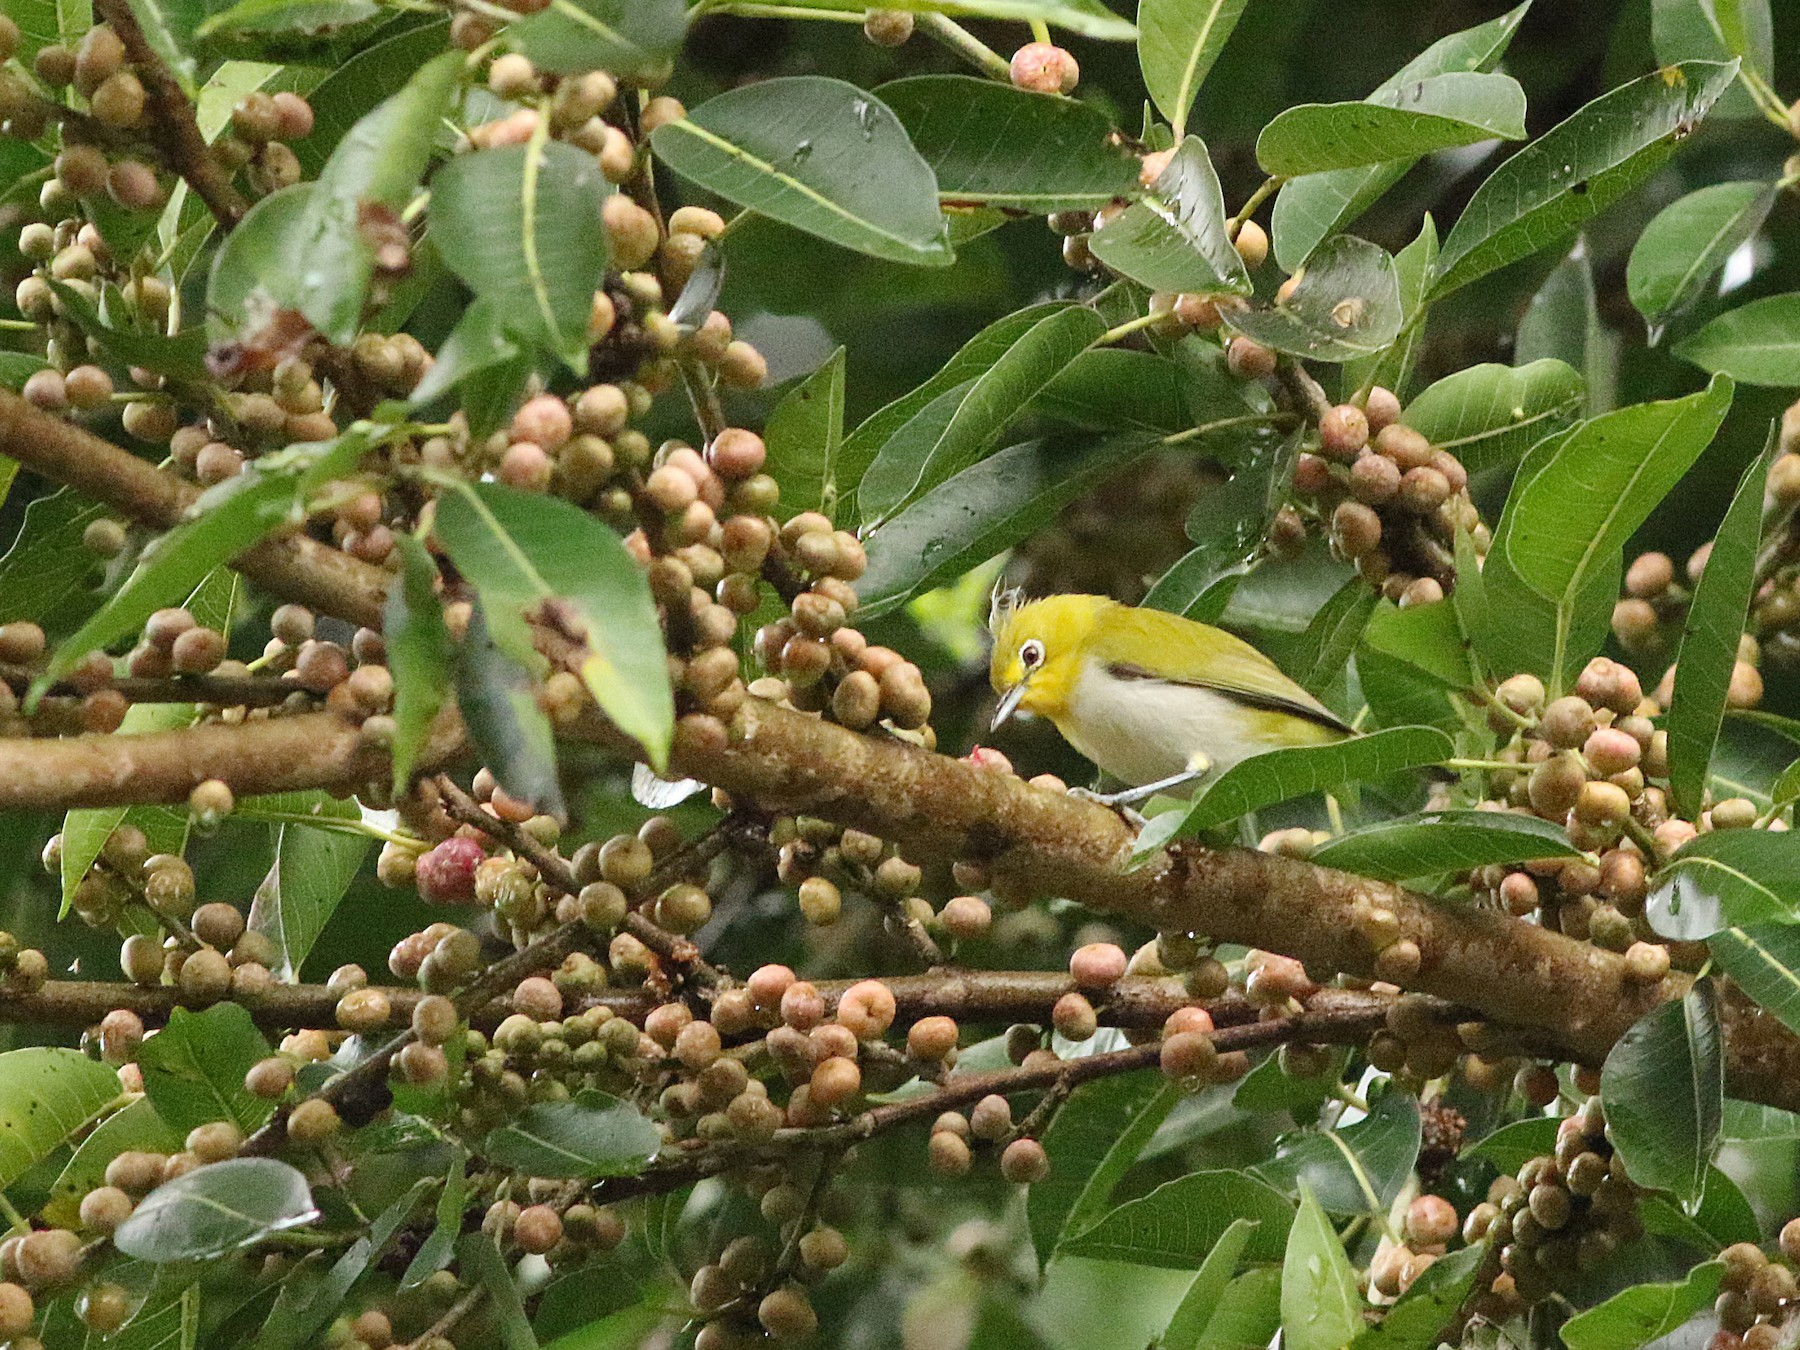 Lowland White-eye - Meng-Chieh (孟婕) FENG (馮)